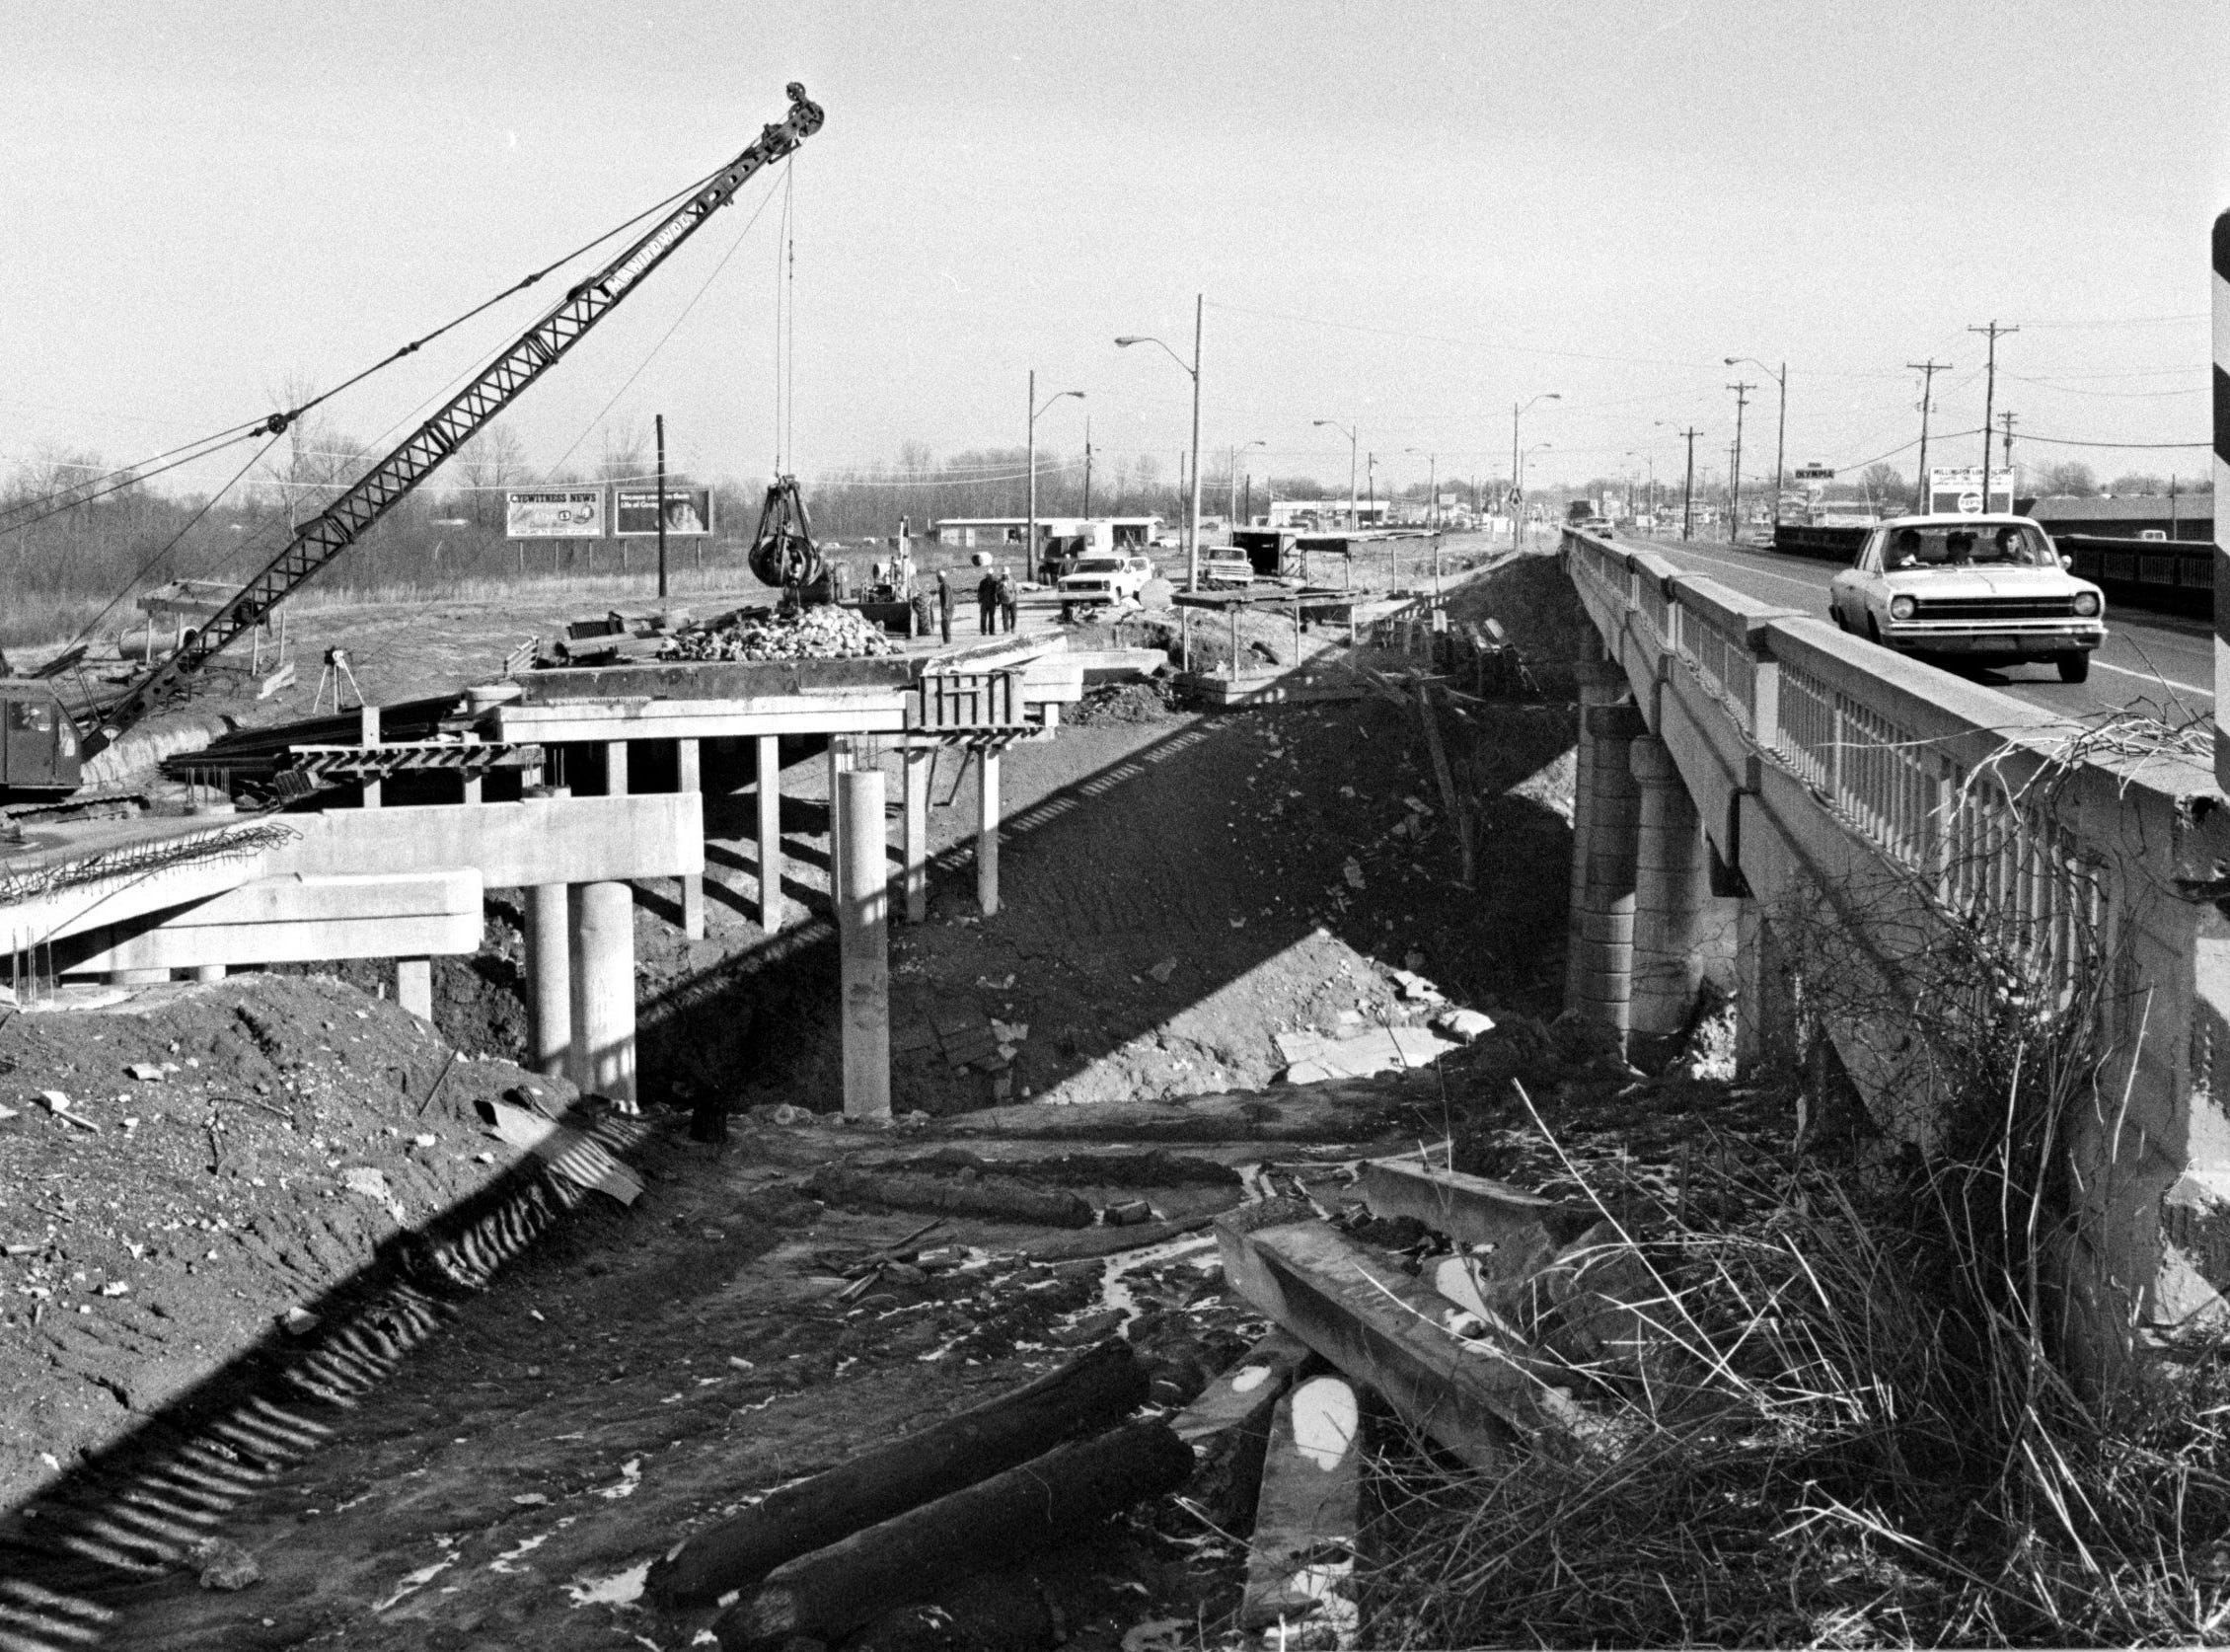 Work progresses in January 1975 on a two-step bridge project over Big Creek south of Millington that will smooth the flow of traffic in and out of the county's navy town. The narrow, old bridge was being undermined by Big Creek and was otherwise deteriorating. Workers are widening the southbound bridge from 24 to 42 feet and are aiming at a May 1 completion date. The northbound section will be replaced with a 42-foot wide span, hopefully by Dec.1. Cost of the project , including work on embankments and culverts is $960,507.38.